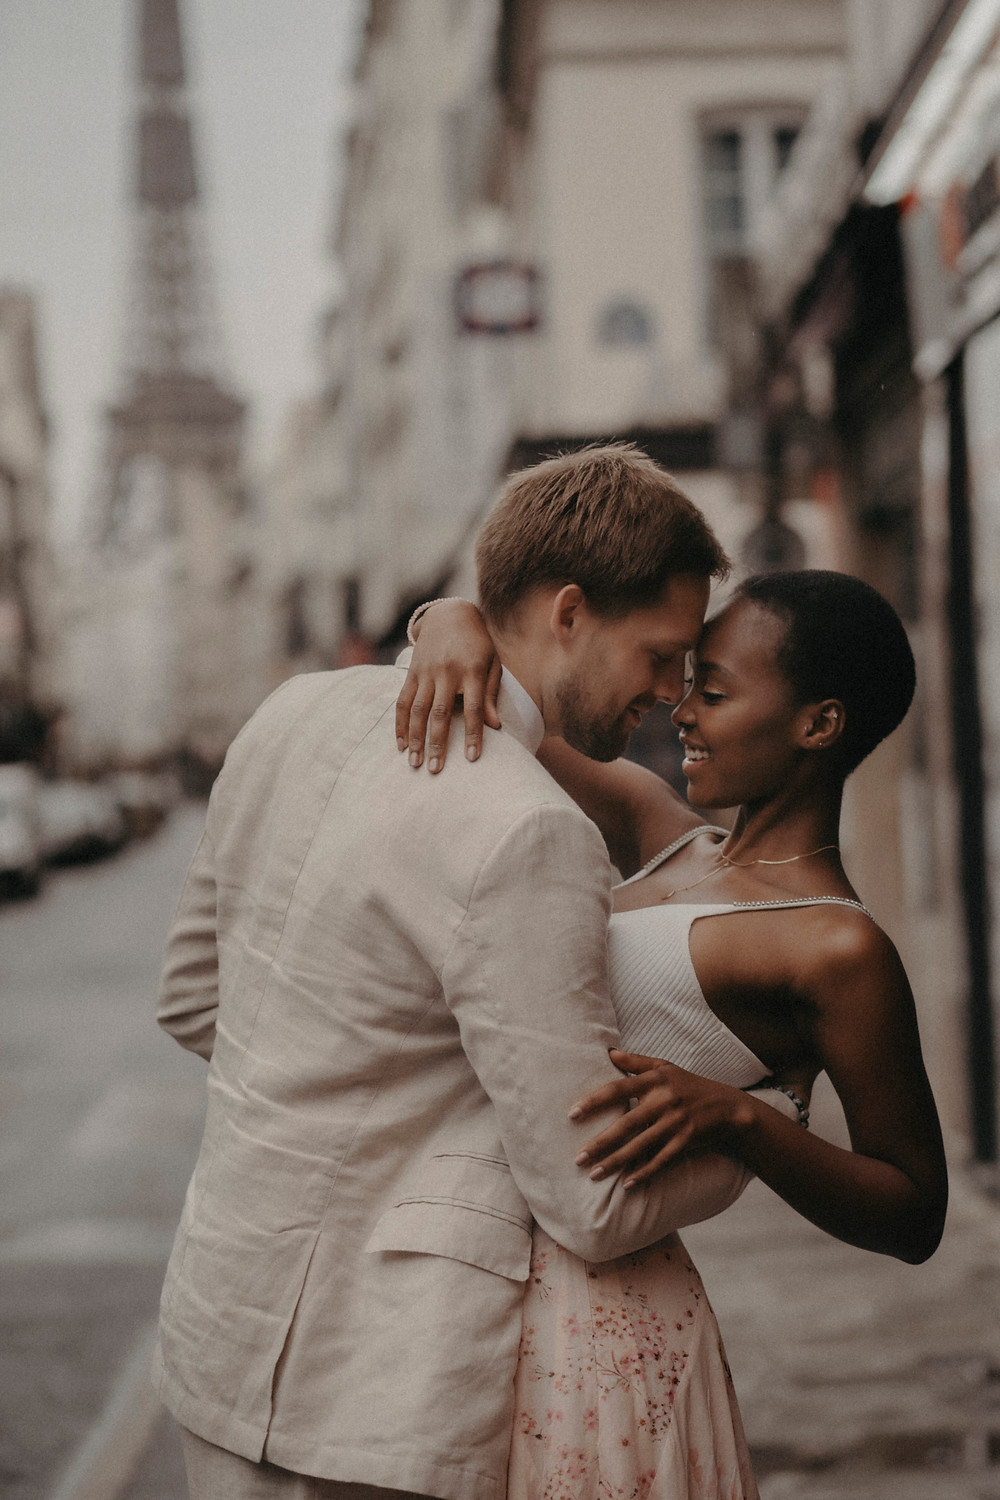 intimate Interracial Couple in Paris